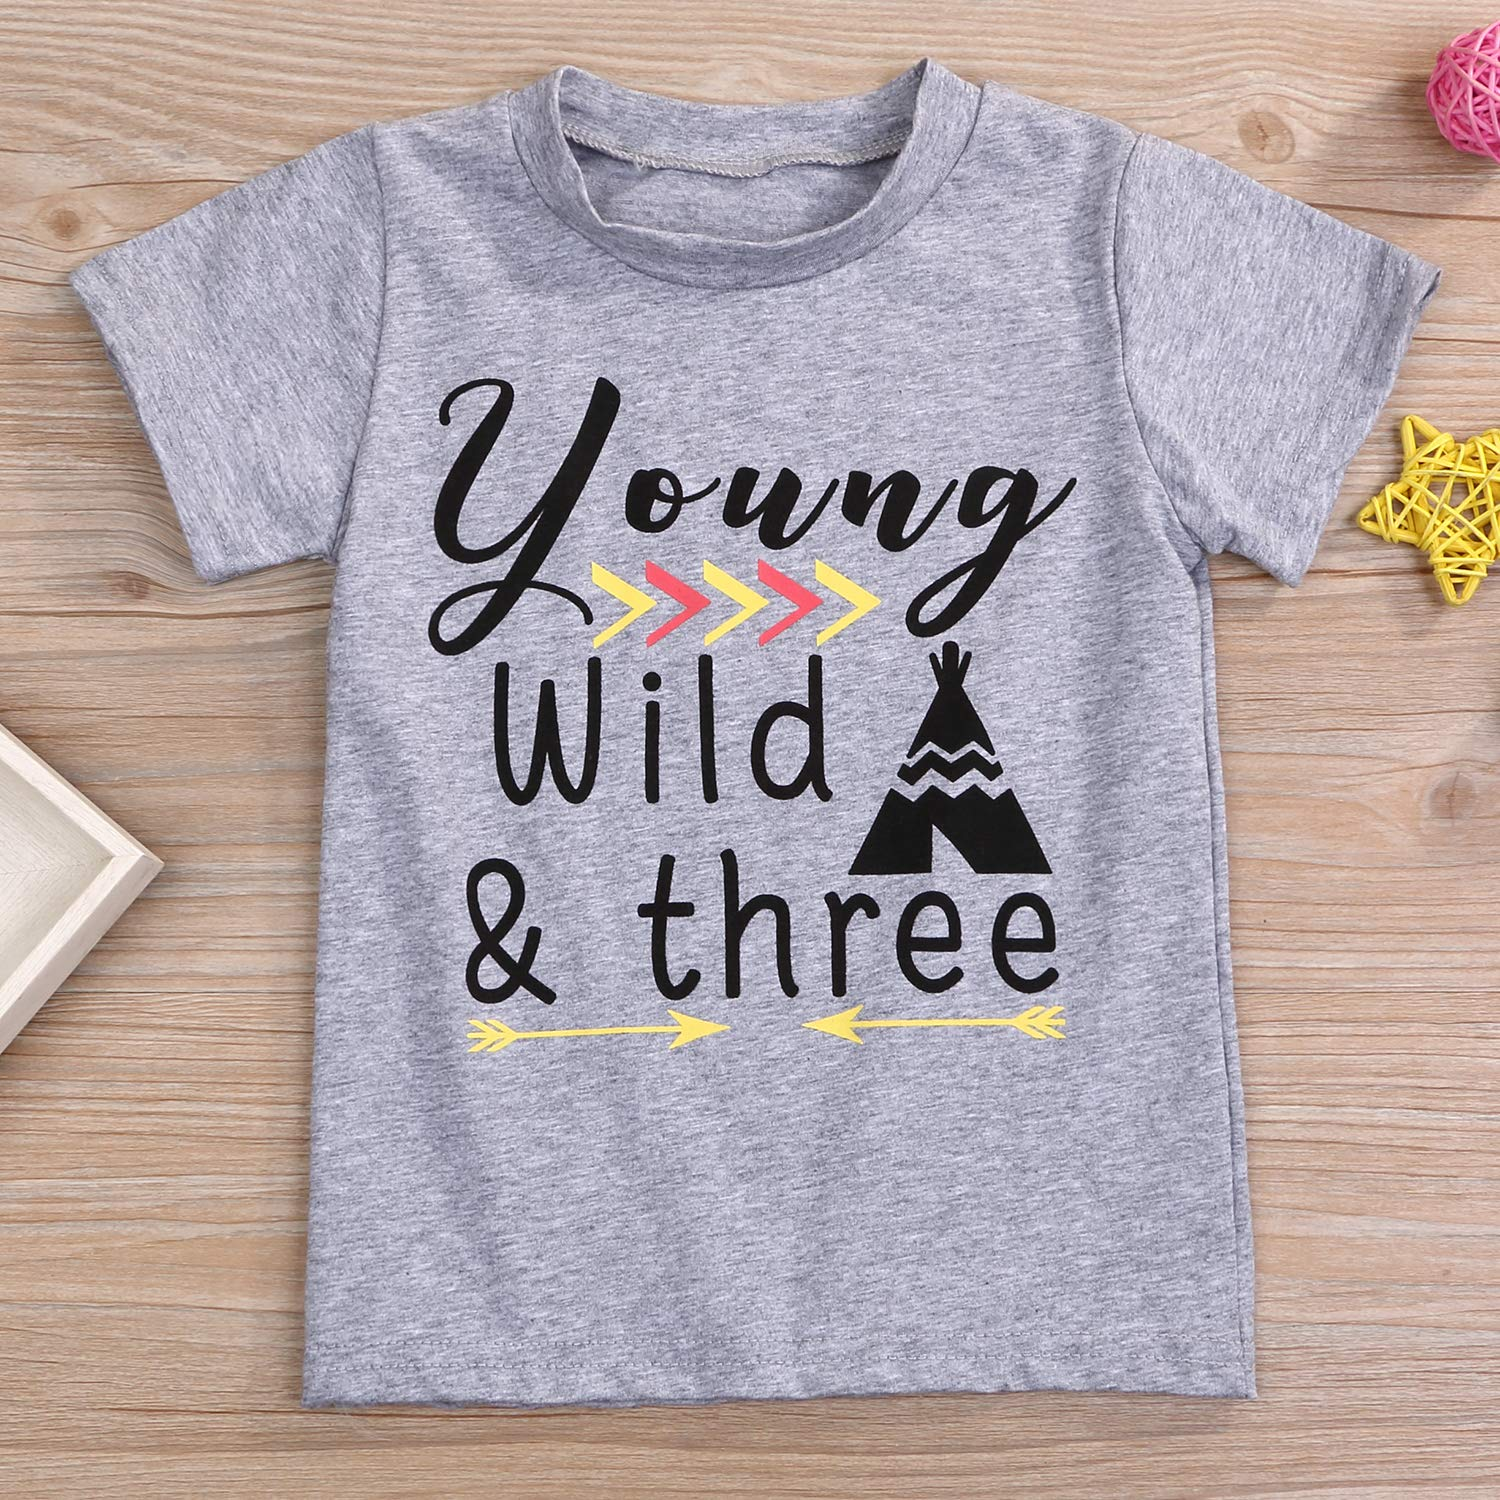 YOUNGER STAR 1PC Children Baby Boy Gray Letter Print Short Sleeve T-Shirt Clothes Outfit